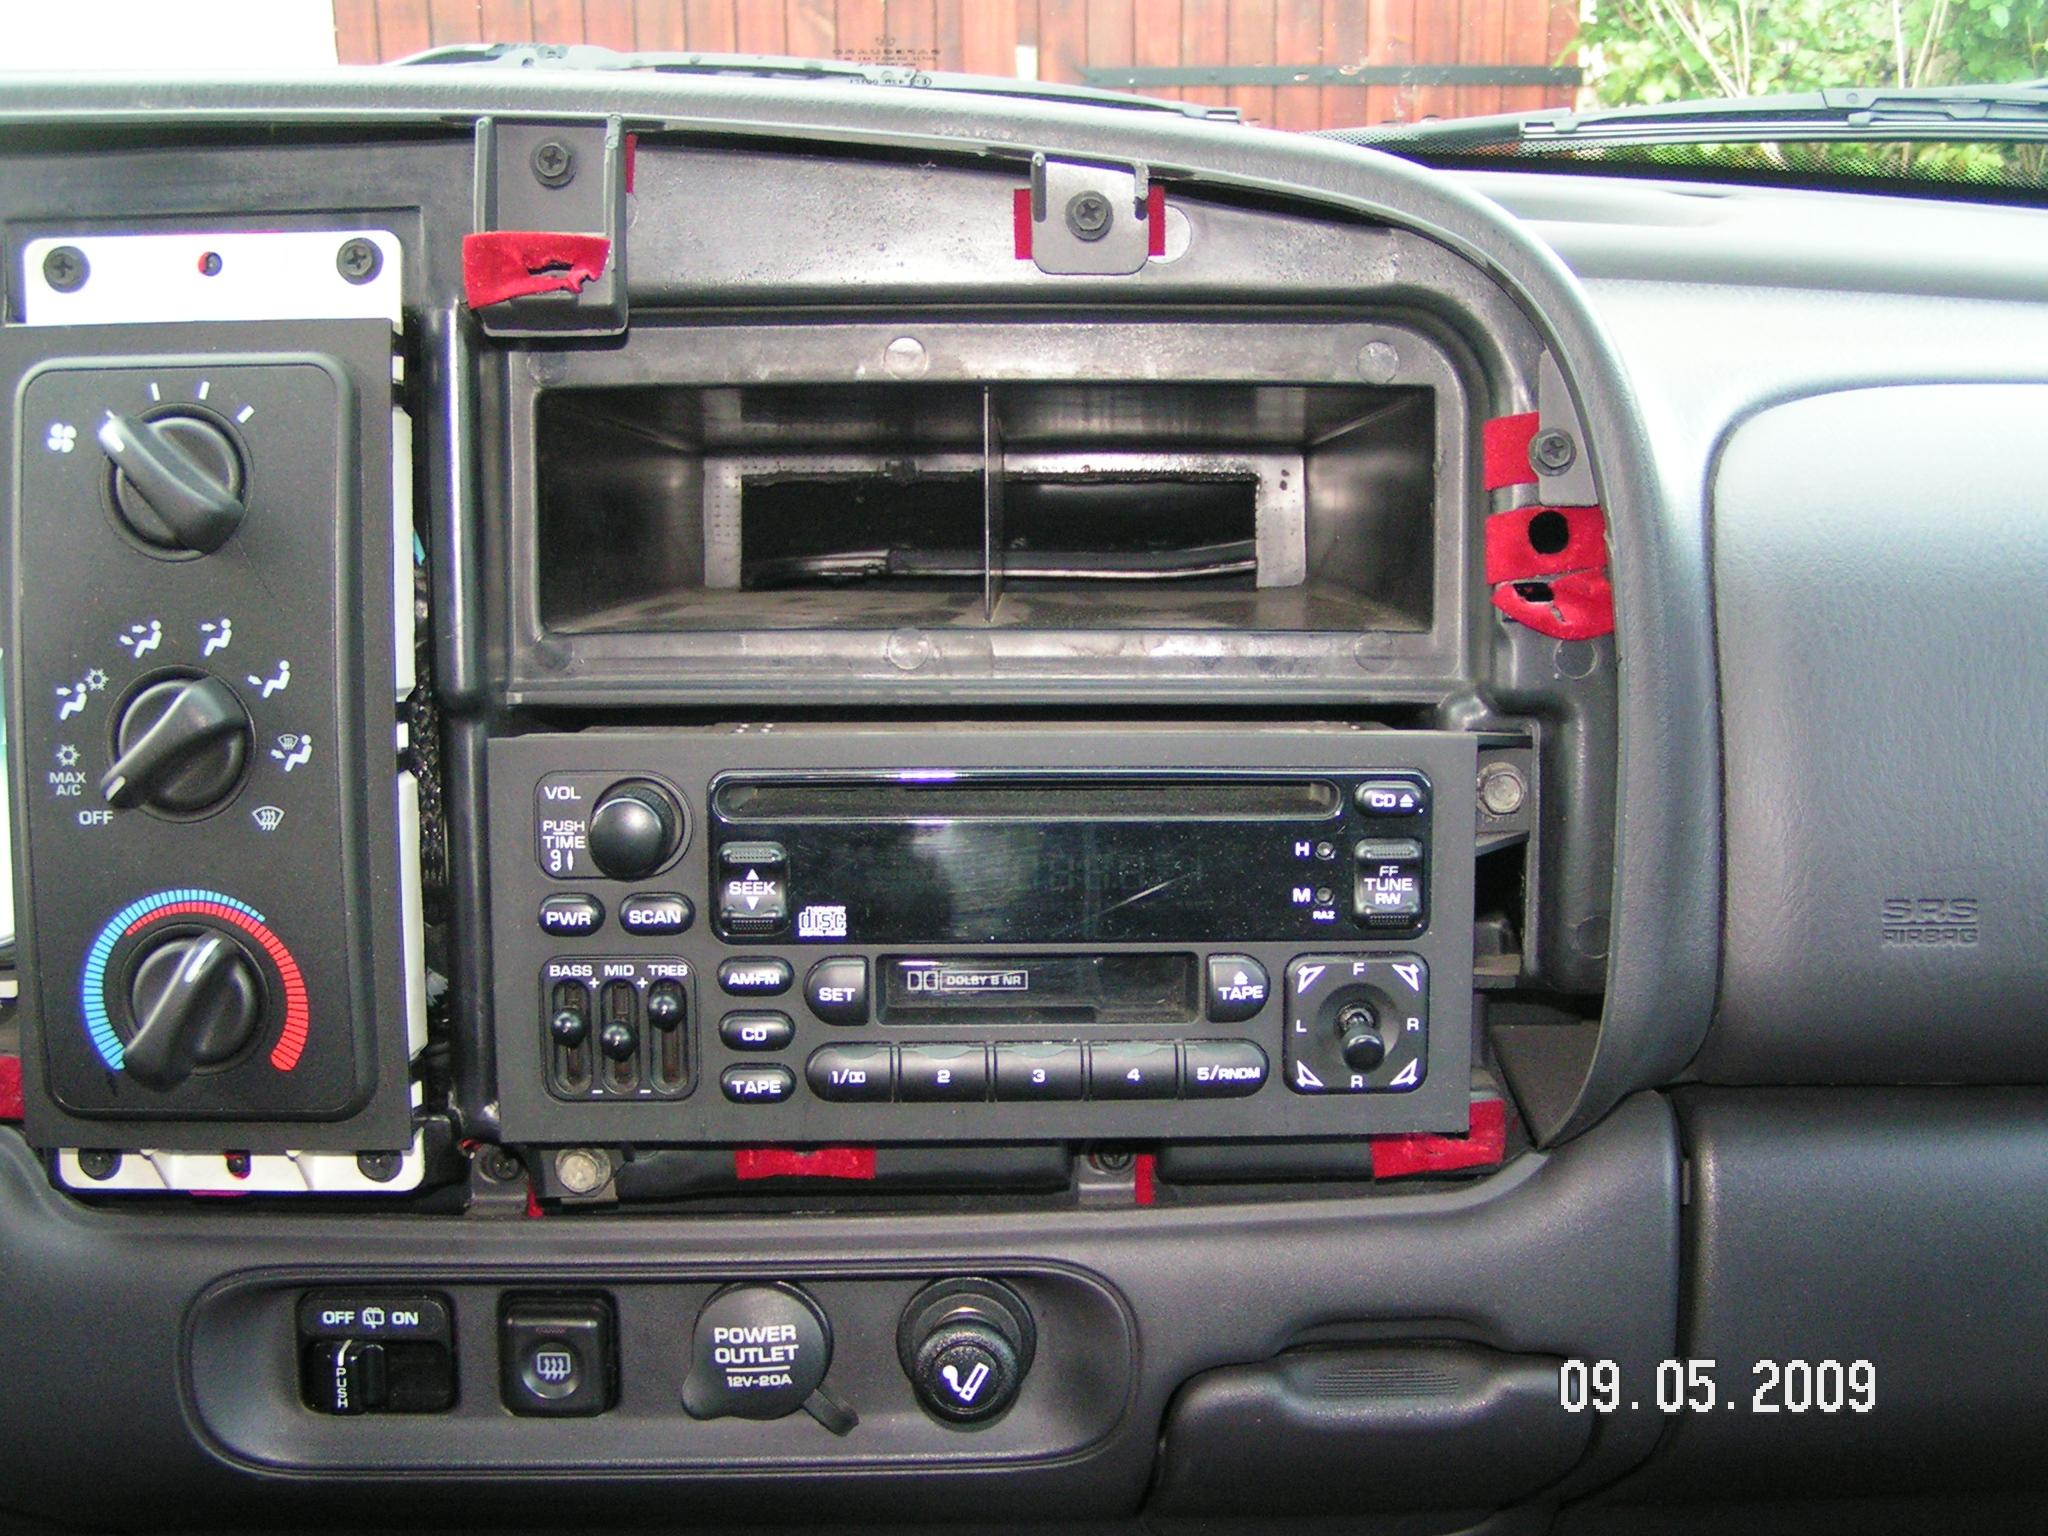 Stereo Wiring Diagram For A 2000 Dodge Durango Library. Stereo Wiring Diagram For A 2000 Dodge Durango. Wiring. 2000 1500 Ram Radio Schematic At Scoala.co